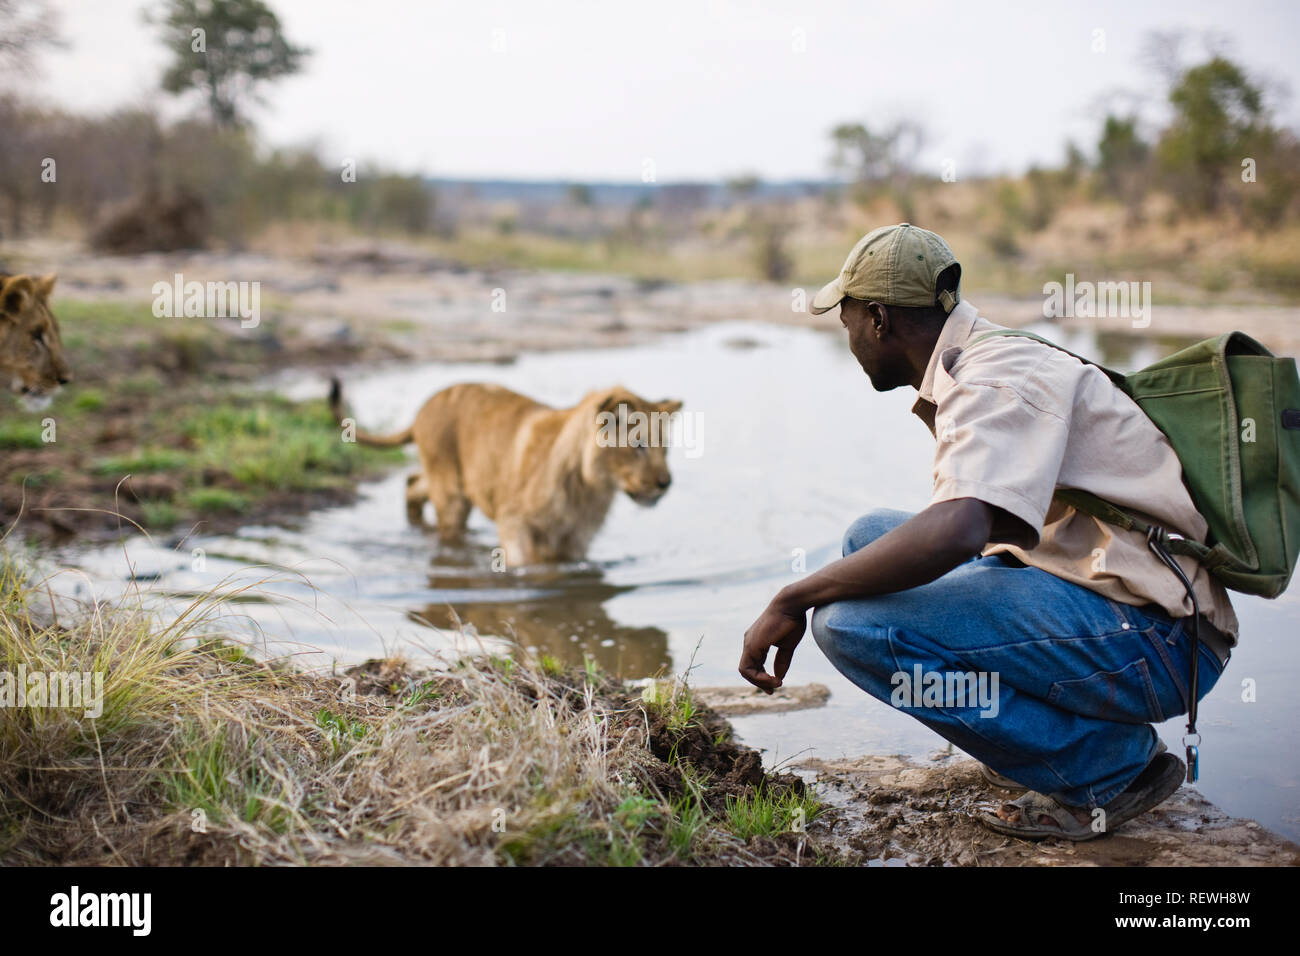 Mid-adult man crouching beside a lion on a pond. Stock Photo